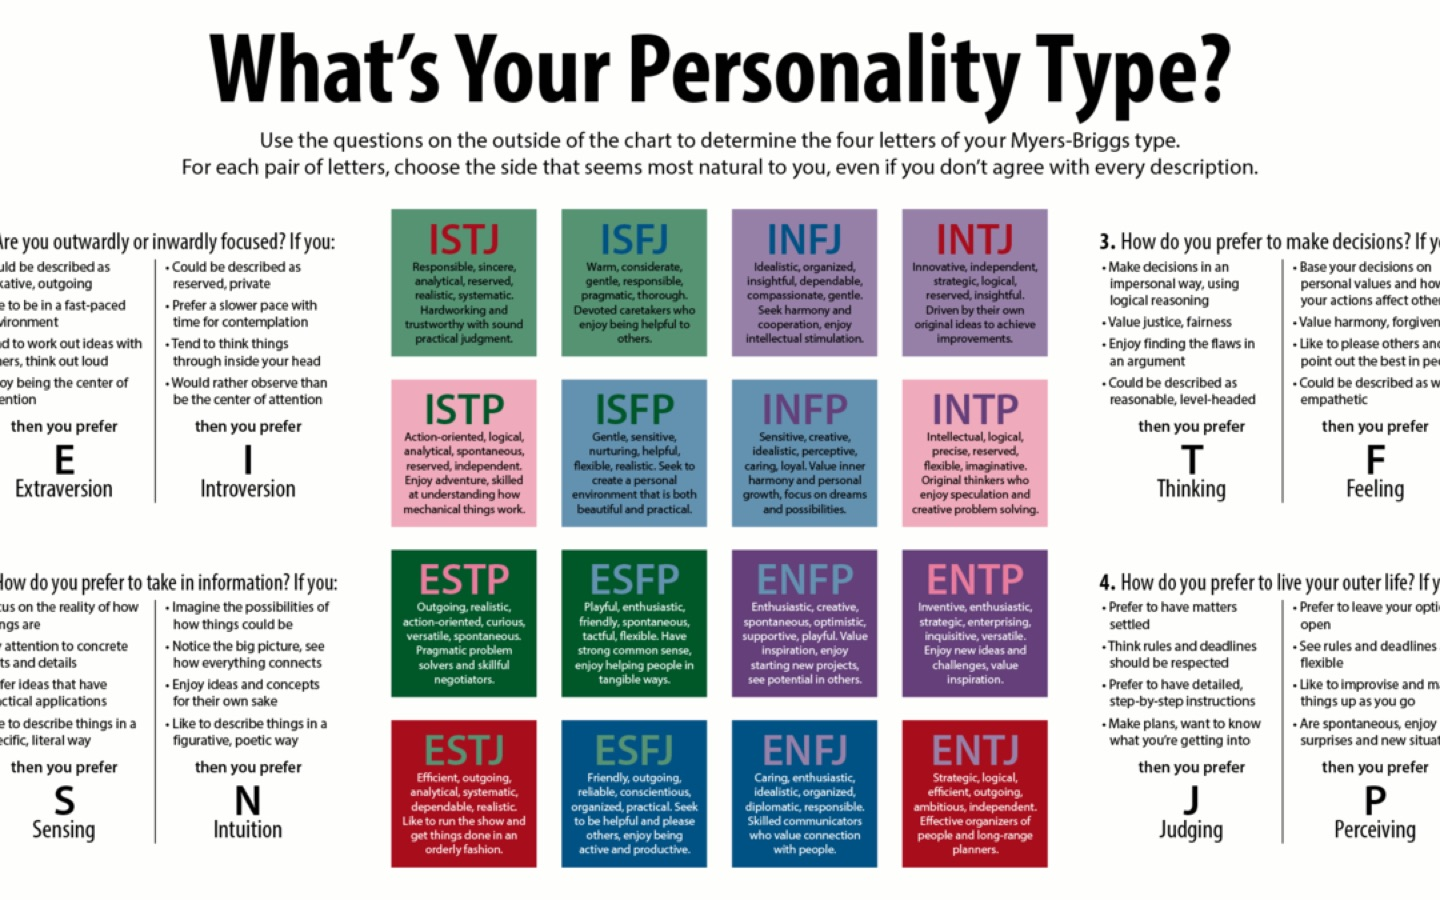 How to make your personality